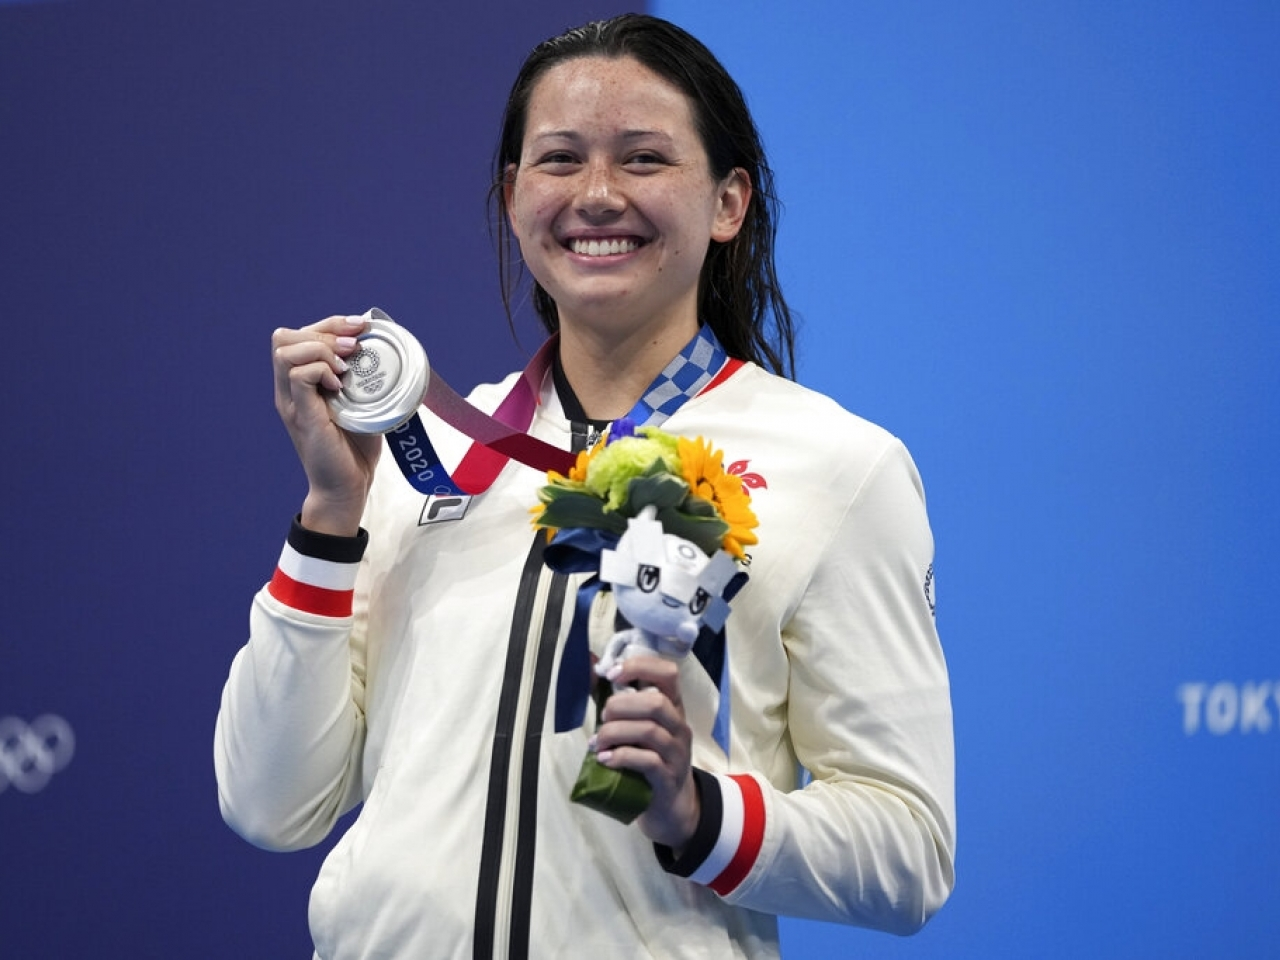 Siobhan Haughey proudly shows off Hong Kong's first ever medal in Olympic swimming. Photo: AP